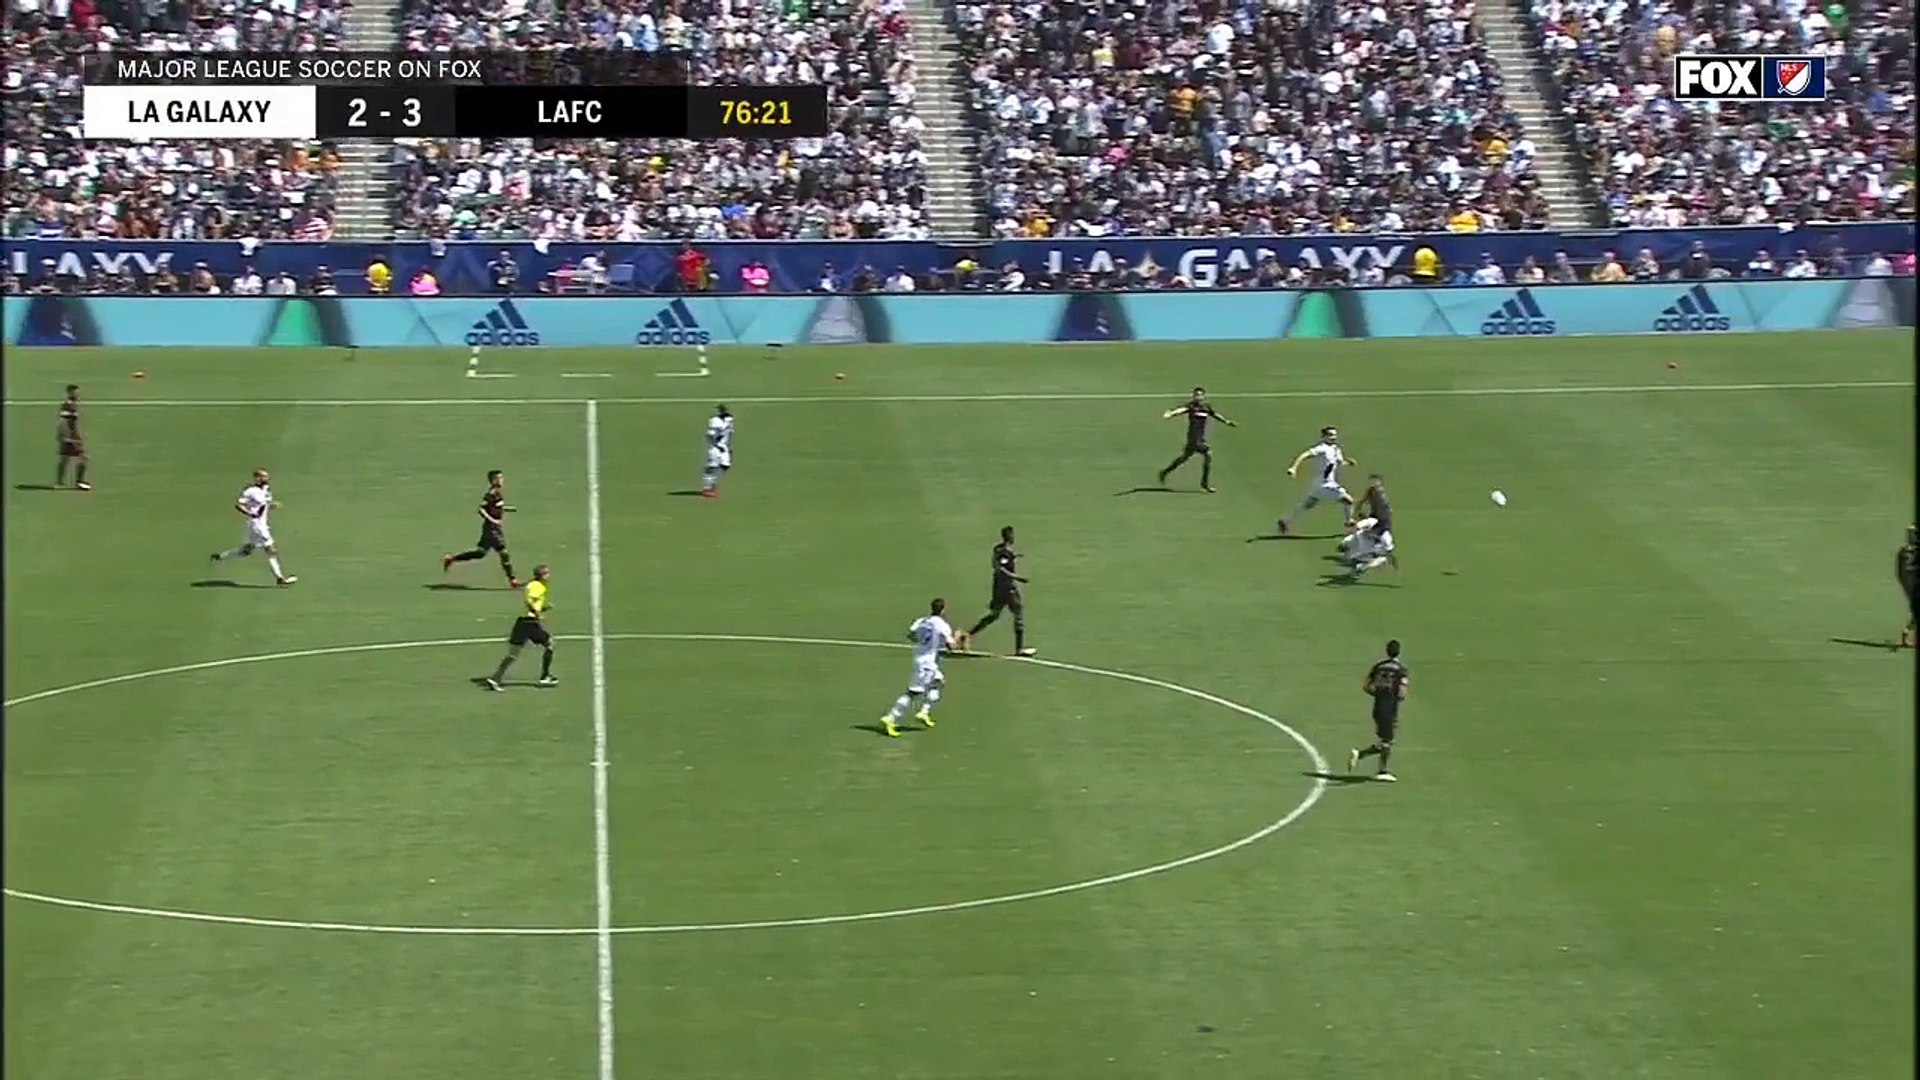 L'incroyable but de Zlatan Ibrahimovic pour son 1er match en MLS avec le Los Angeles Galaxy